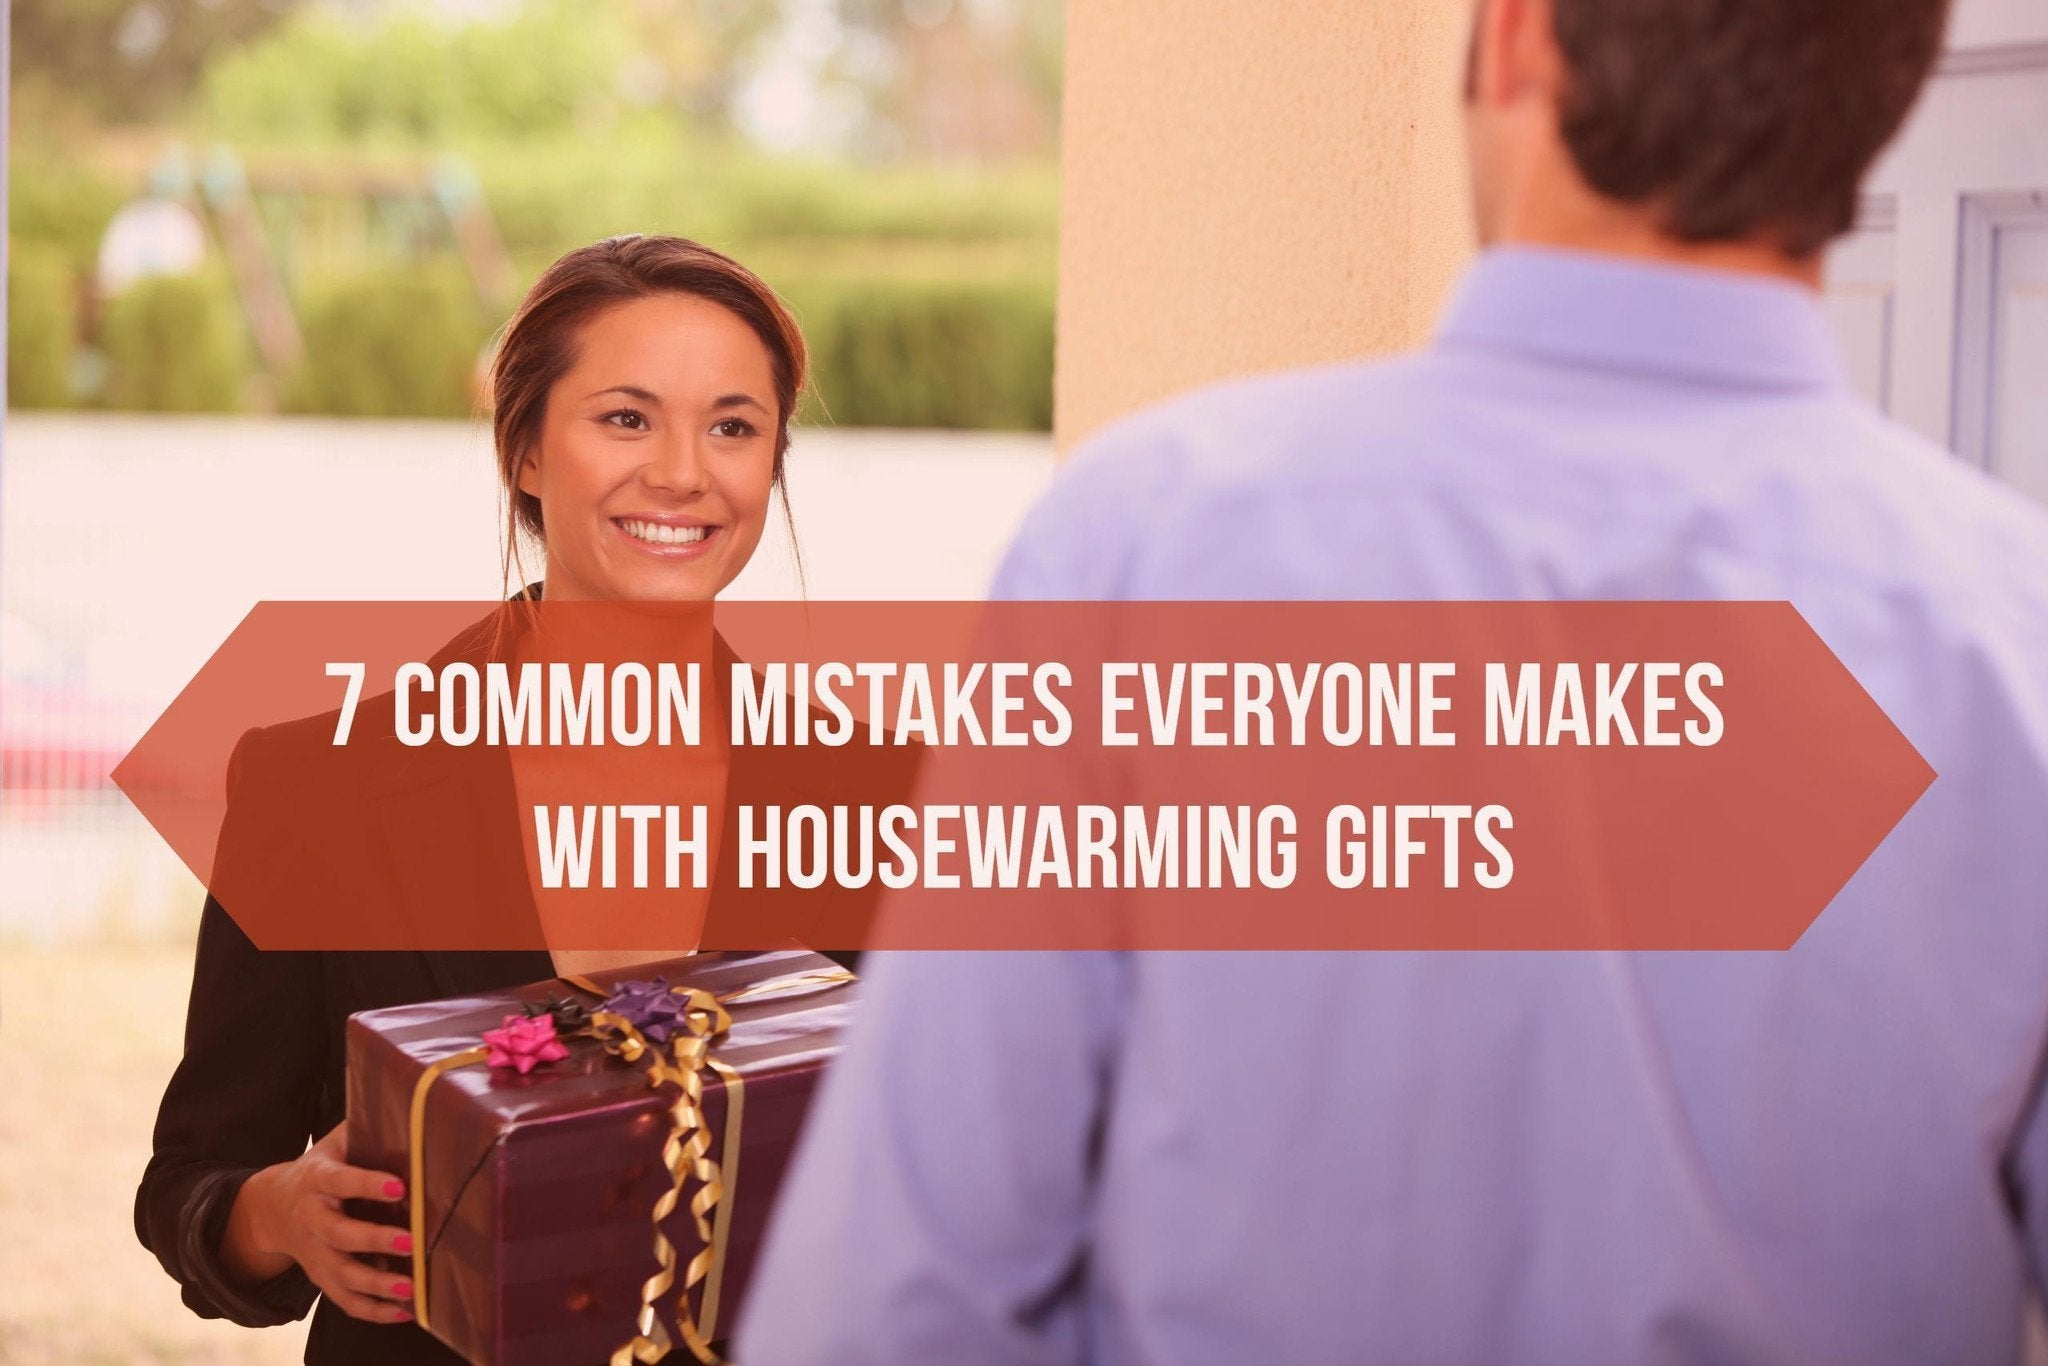 7 Common Mistakes Everyone Makes With Housewarming Gifts